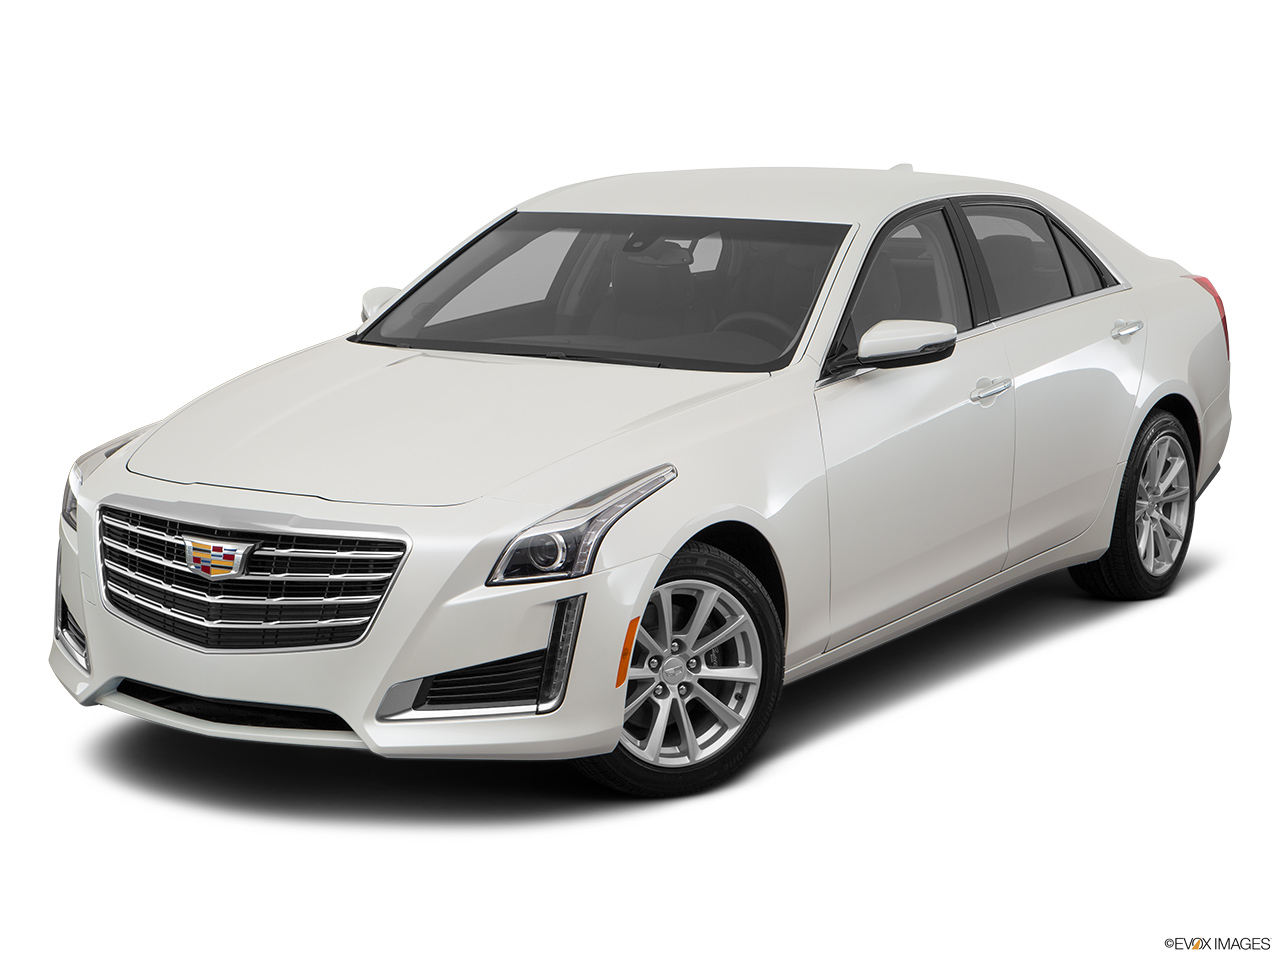 2018 cadillac cts prices in bahrain gulf specs reviews. Black Bedroom Furniture Sets. Home Design Ideas